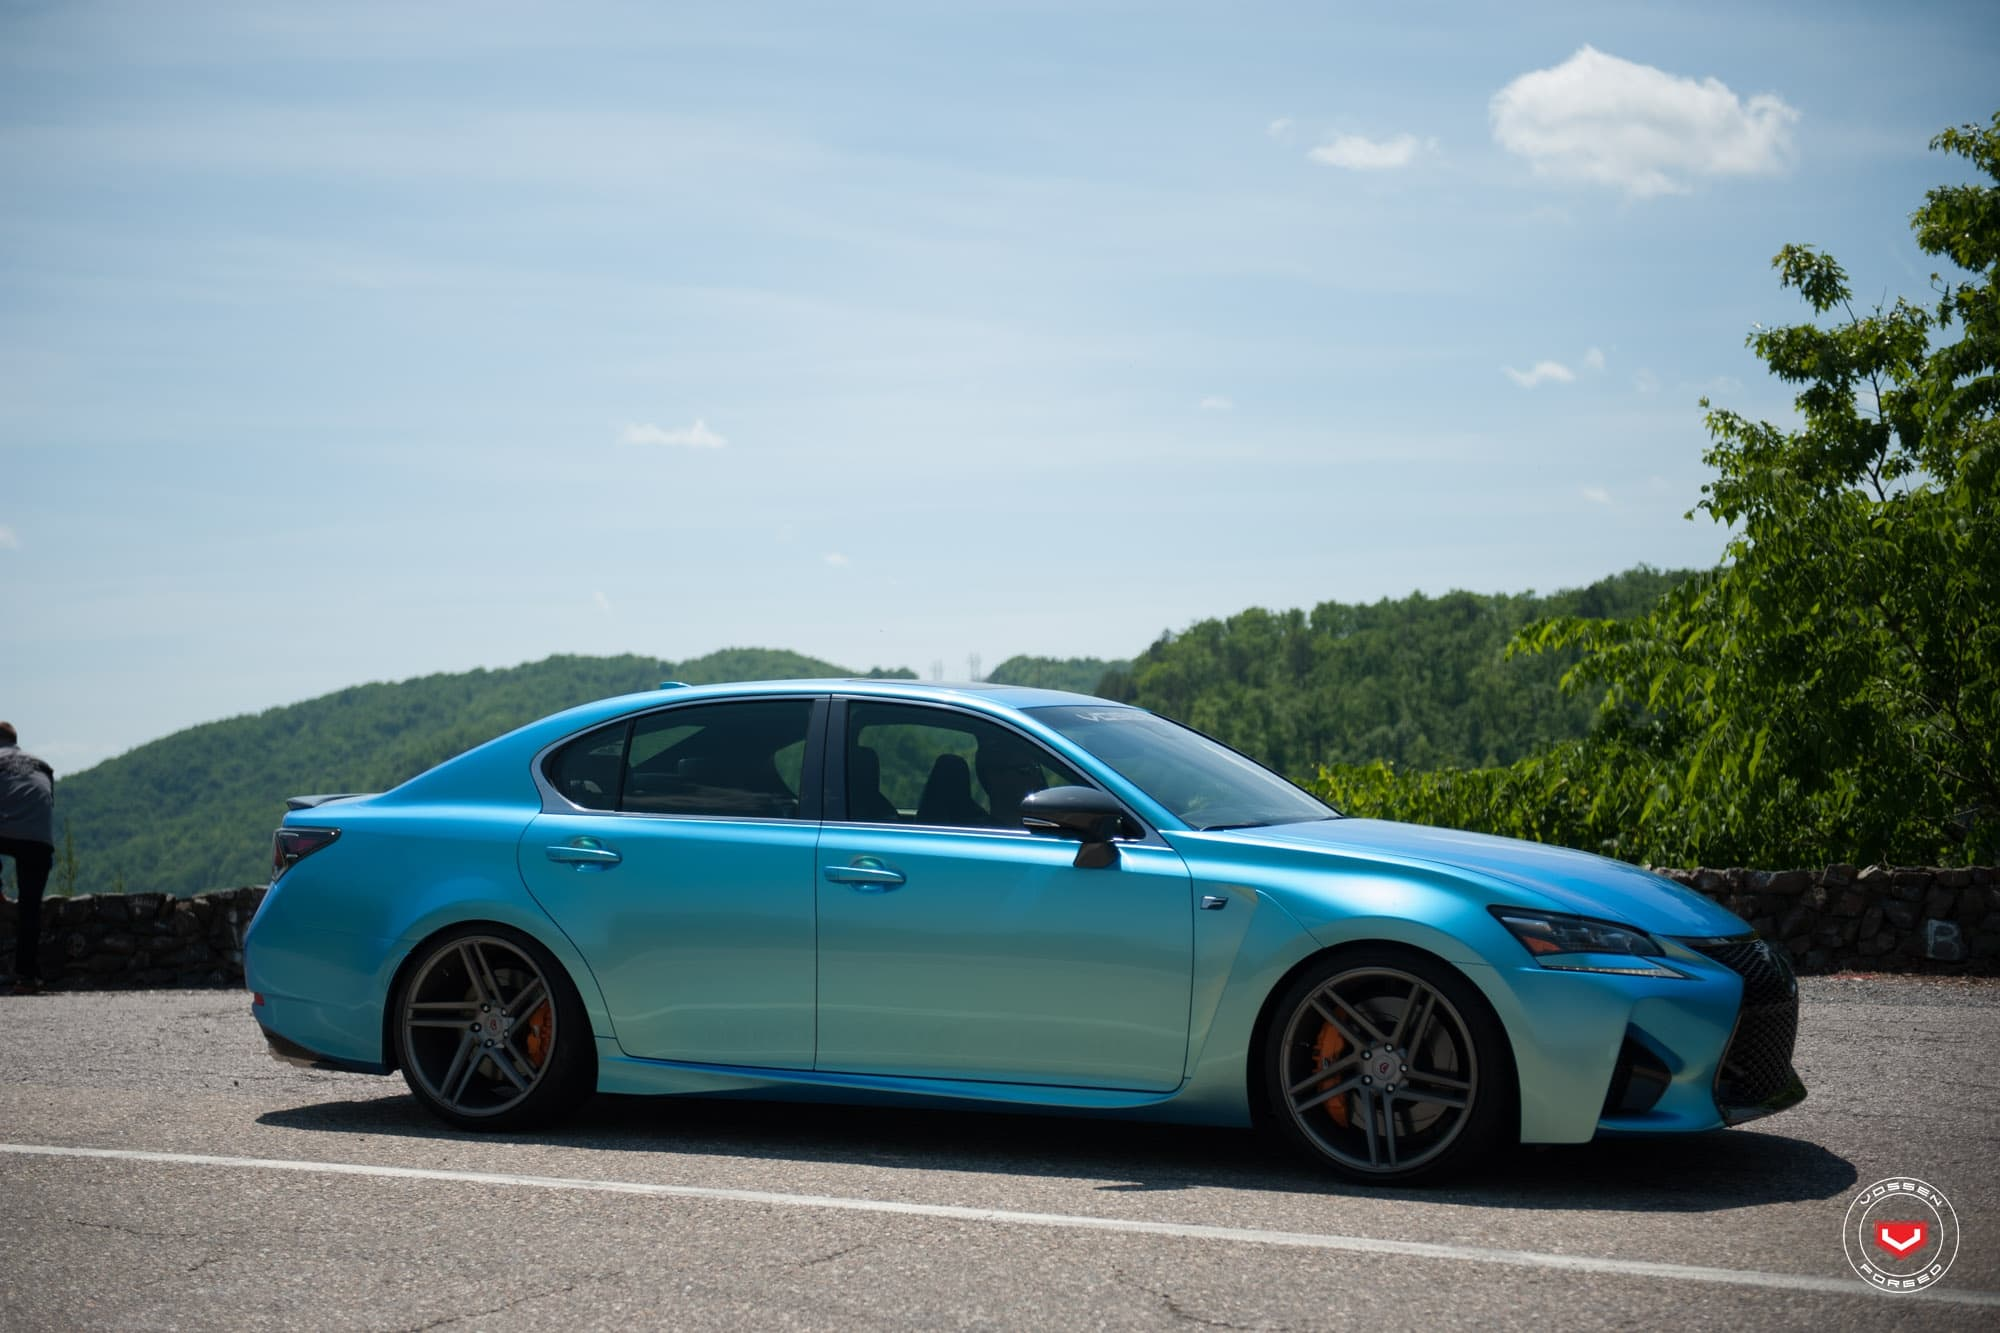 Lexus GSF 2016 High Quality Wallpapers